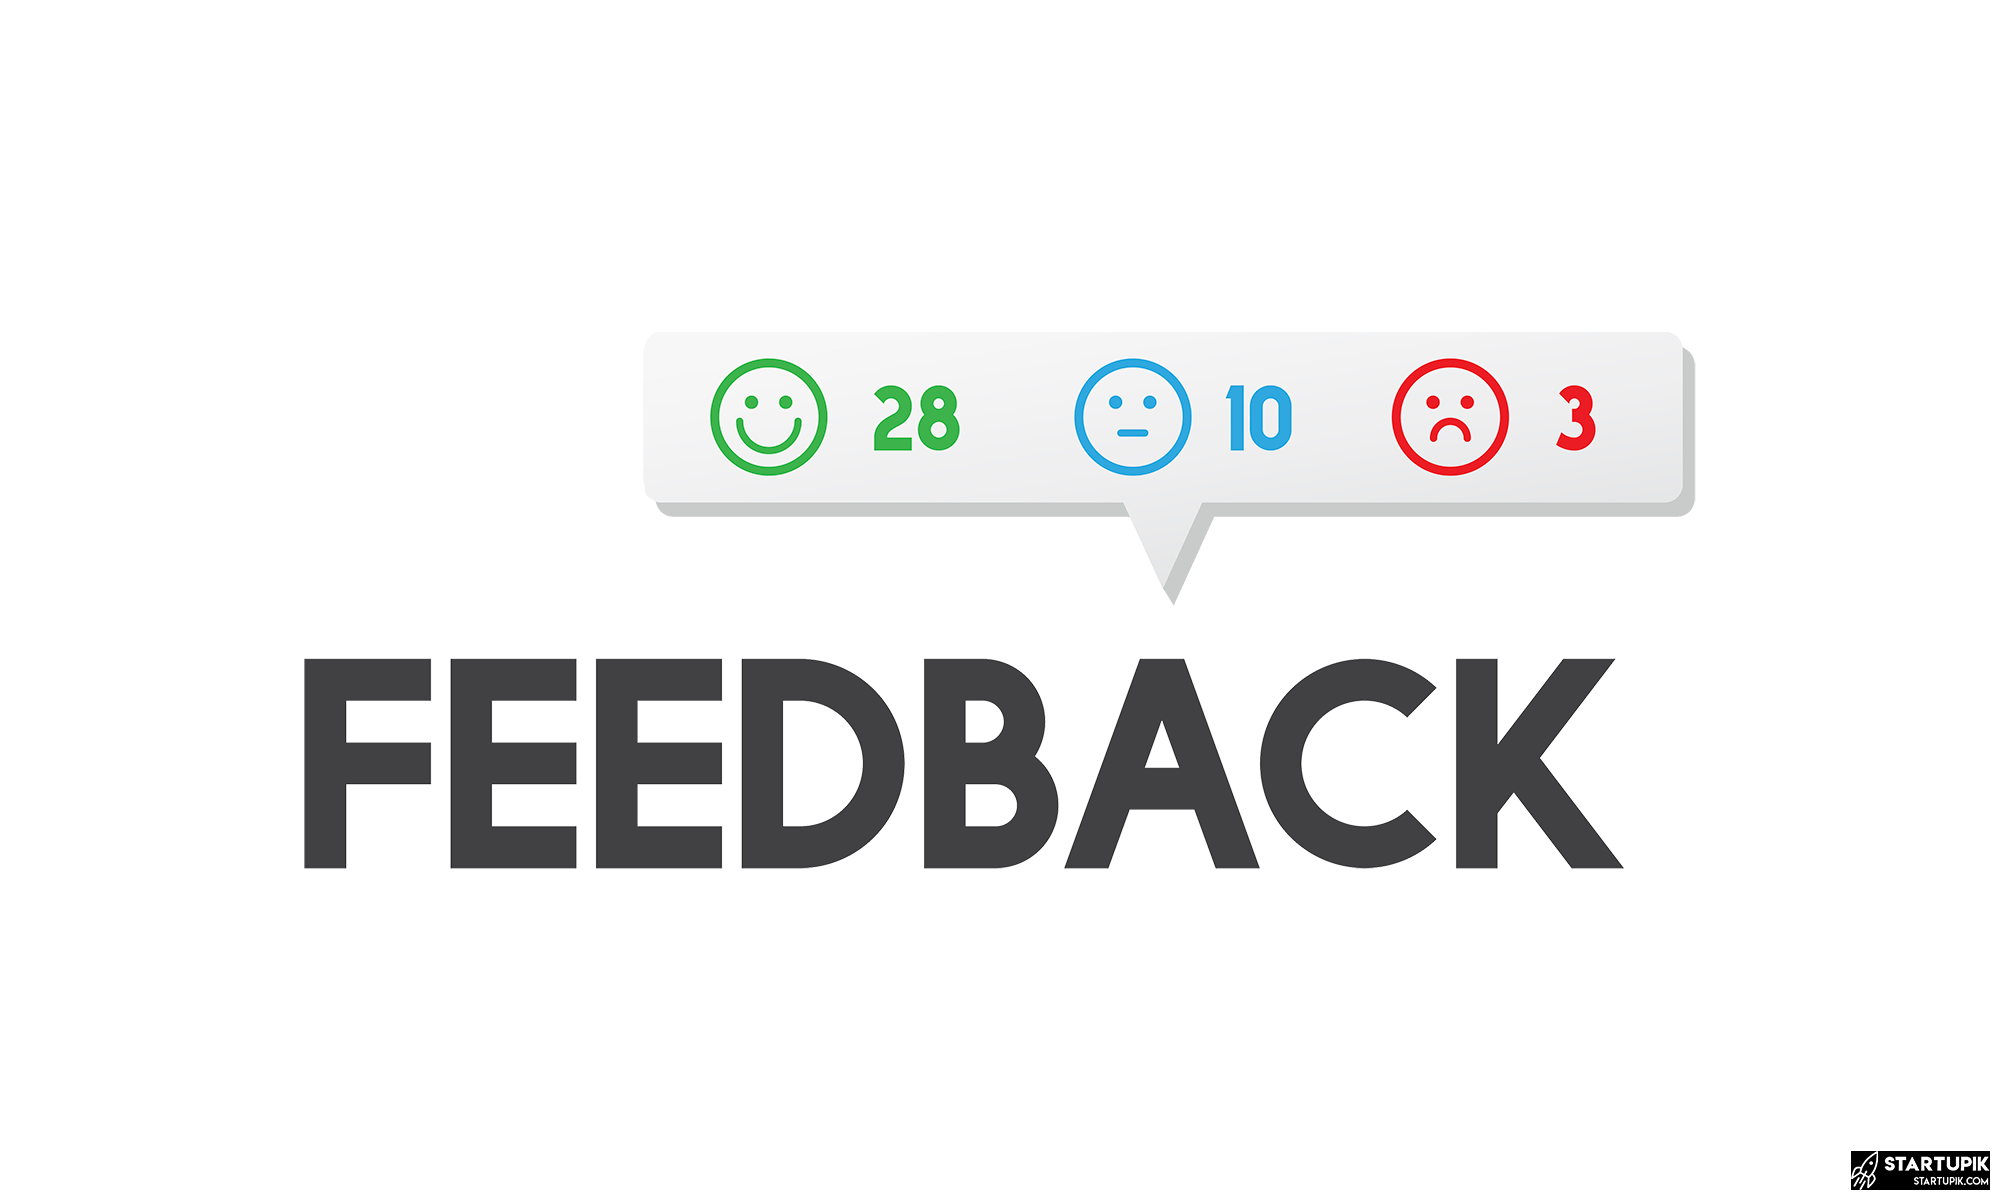 Feedback may cause issues